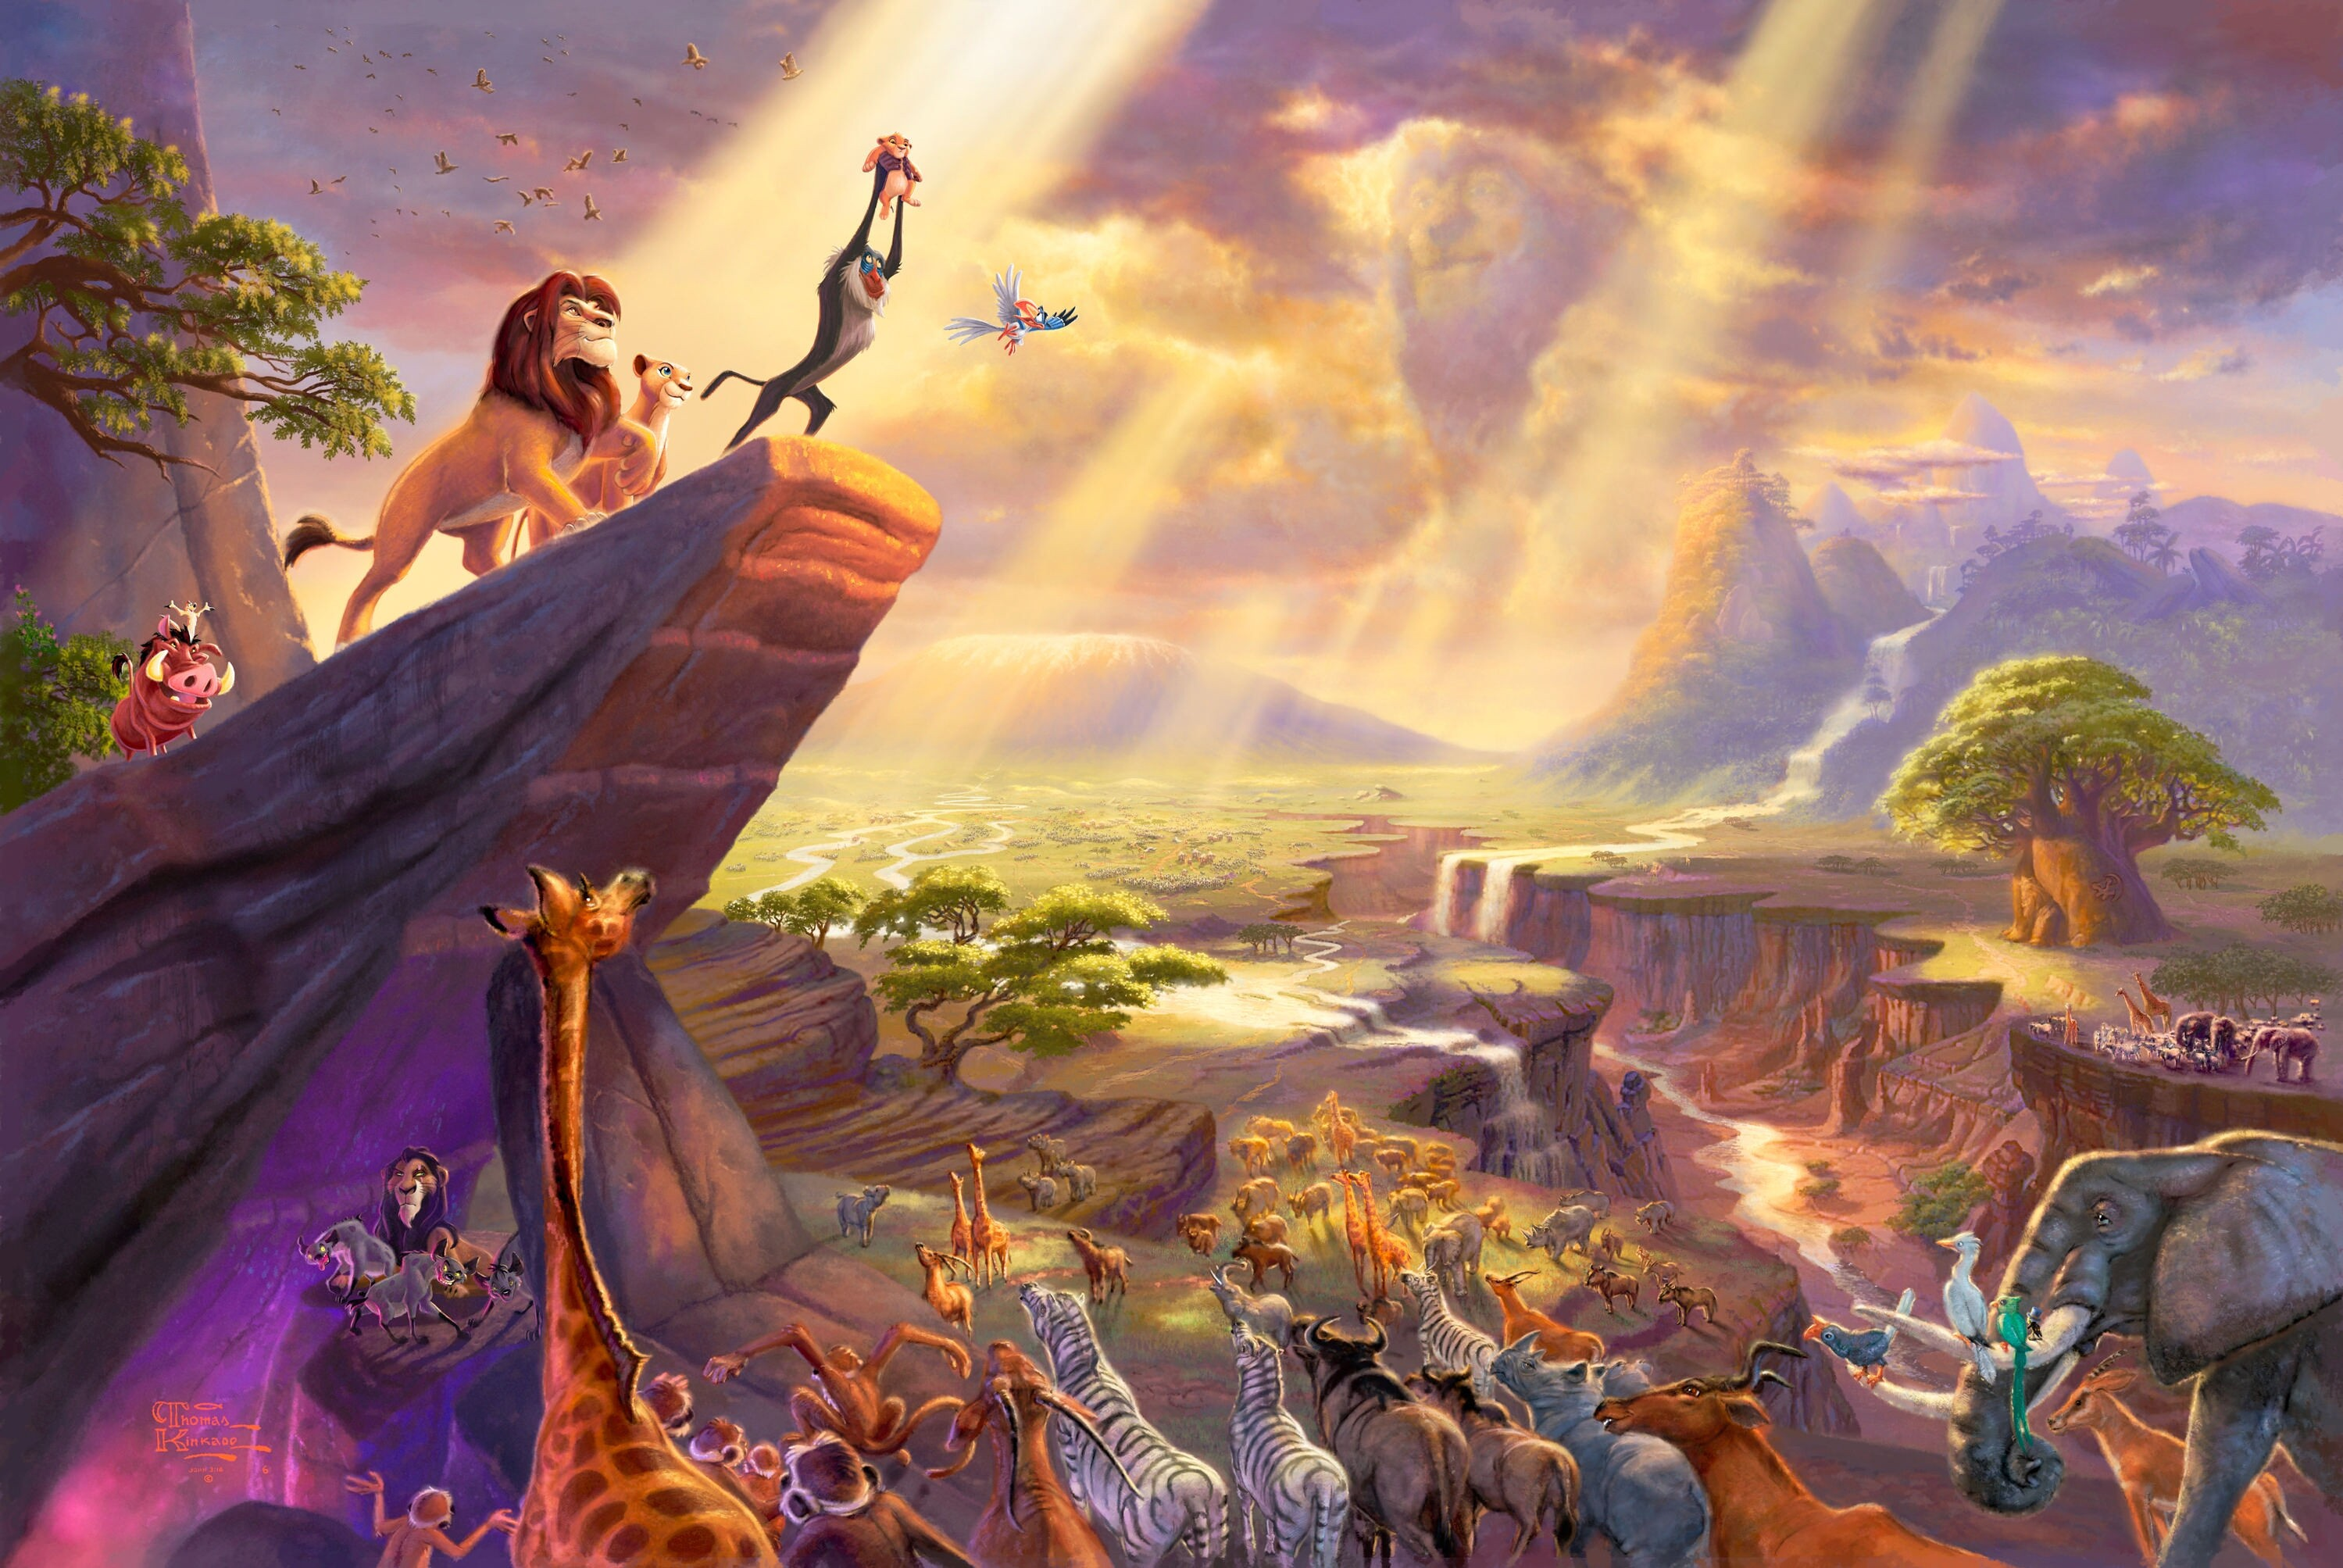 Lion King Wallpaper Download Free Amazing Hd Wallpapers For